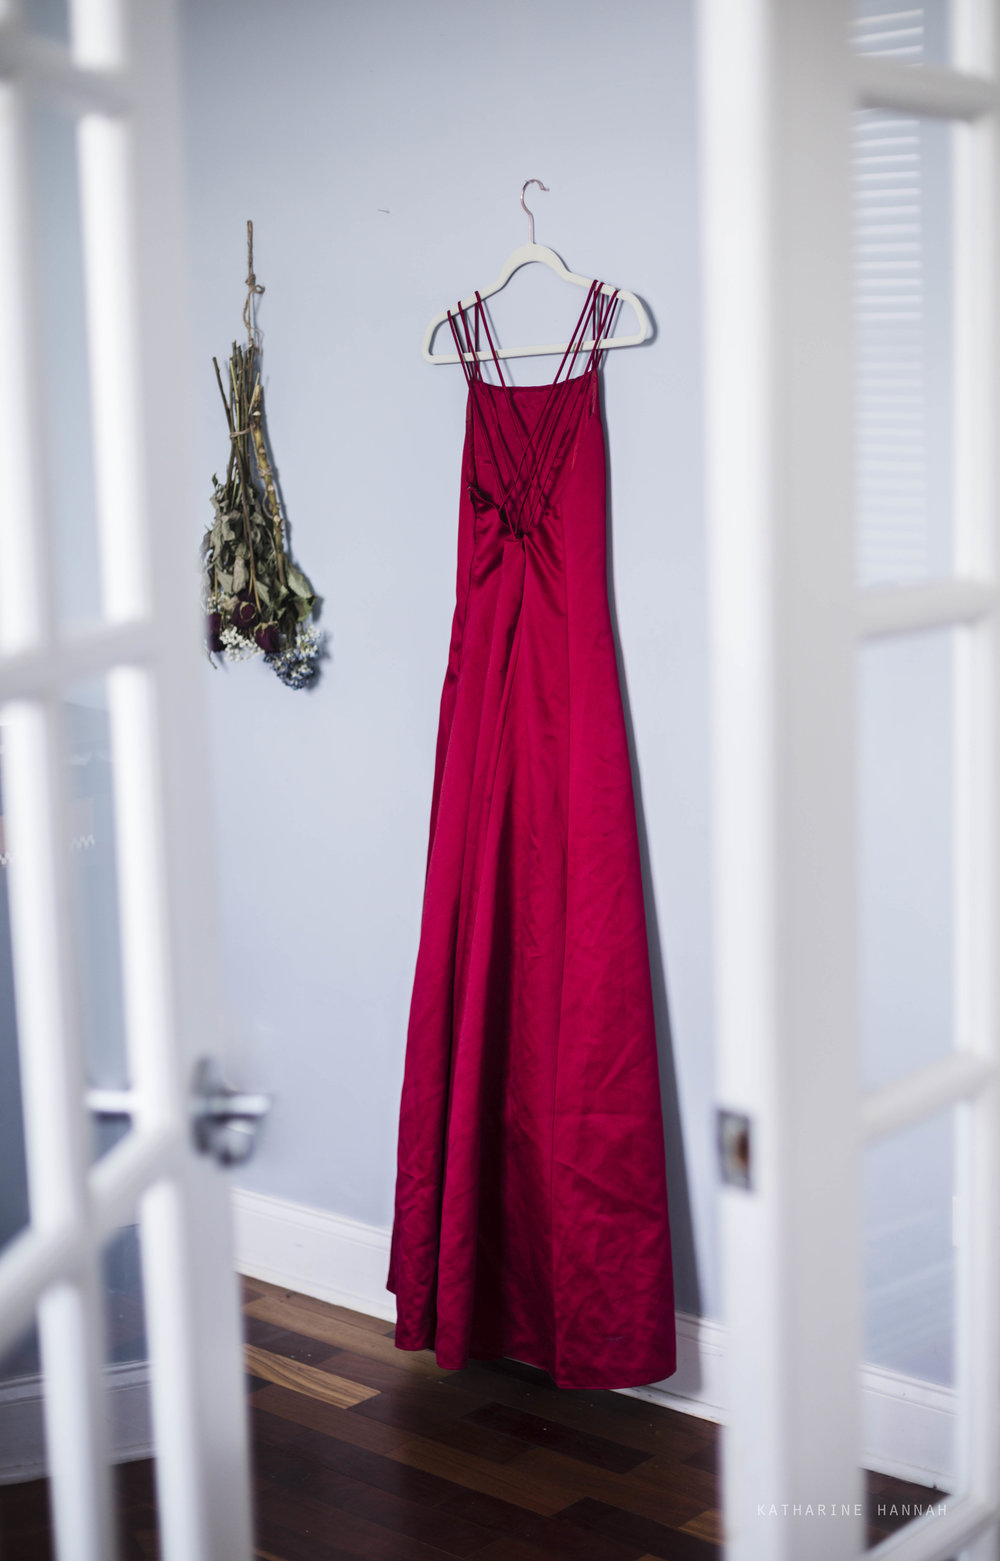 Chicago photography studio dress that women can borrow and wear for their session